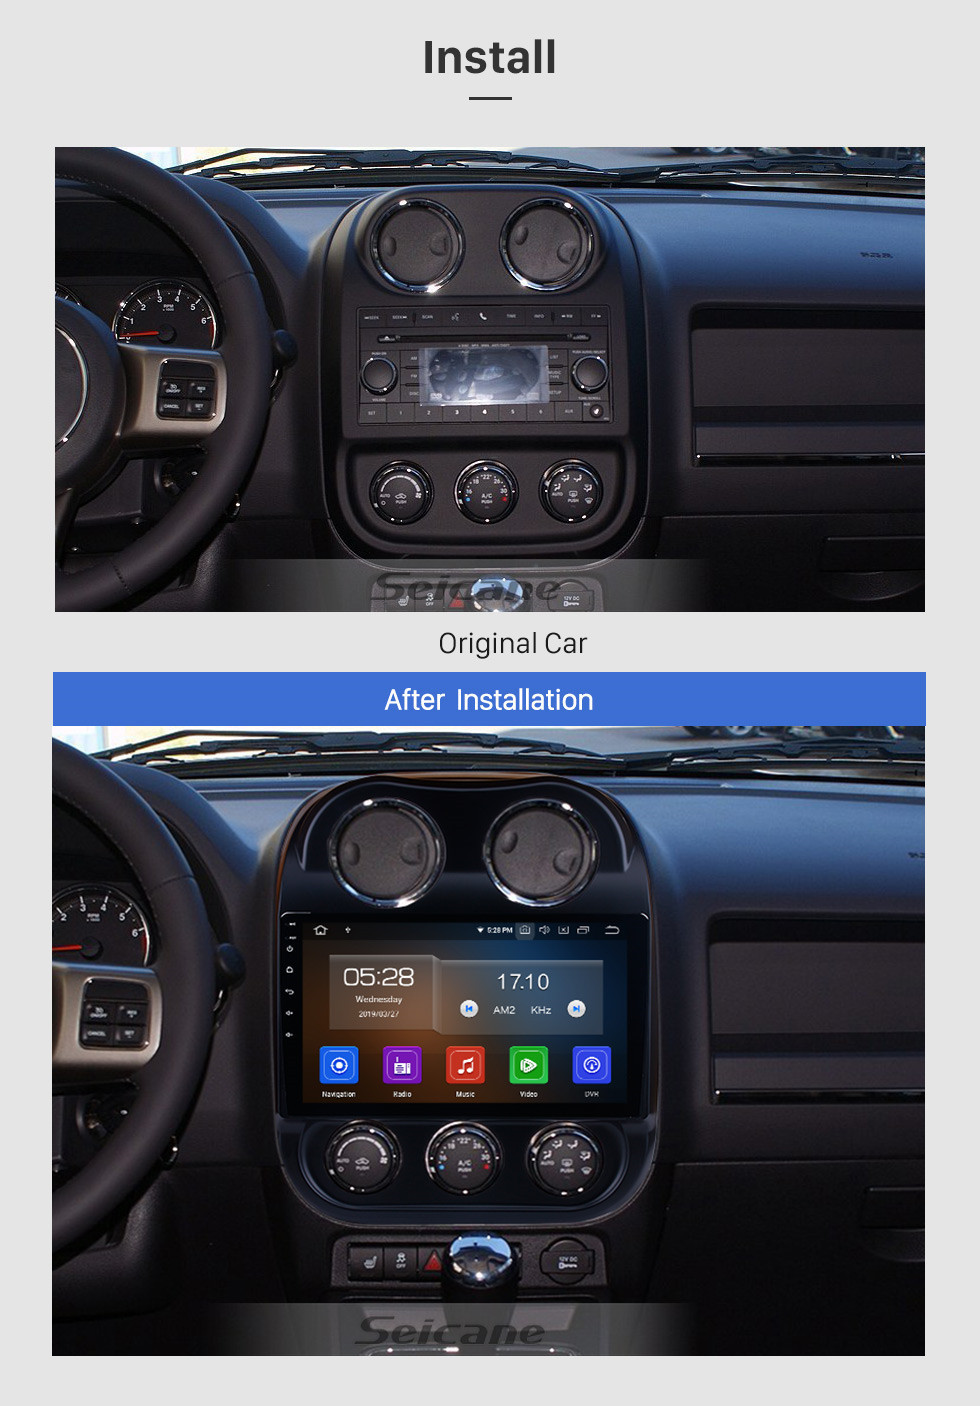 Seicane 10.1 pulgadas Android 10.0 Pantalla táctil radio Bluetooth Sistema de navegación GPS para 2014 2015 Jeep Compass compatible TPMS DVR OBD II USB SD 3G WiFi Cámara trasera Control del volante HD 1080P Video AUX